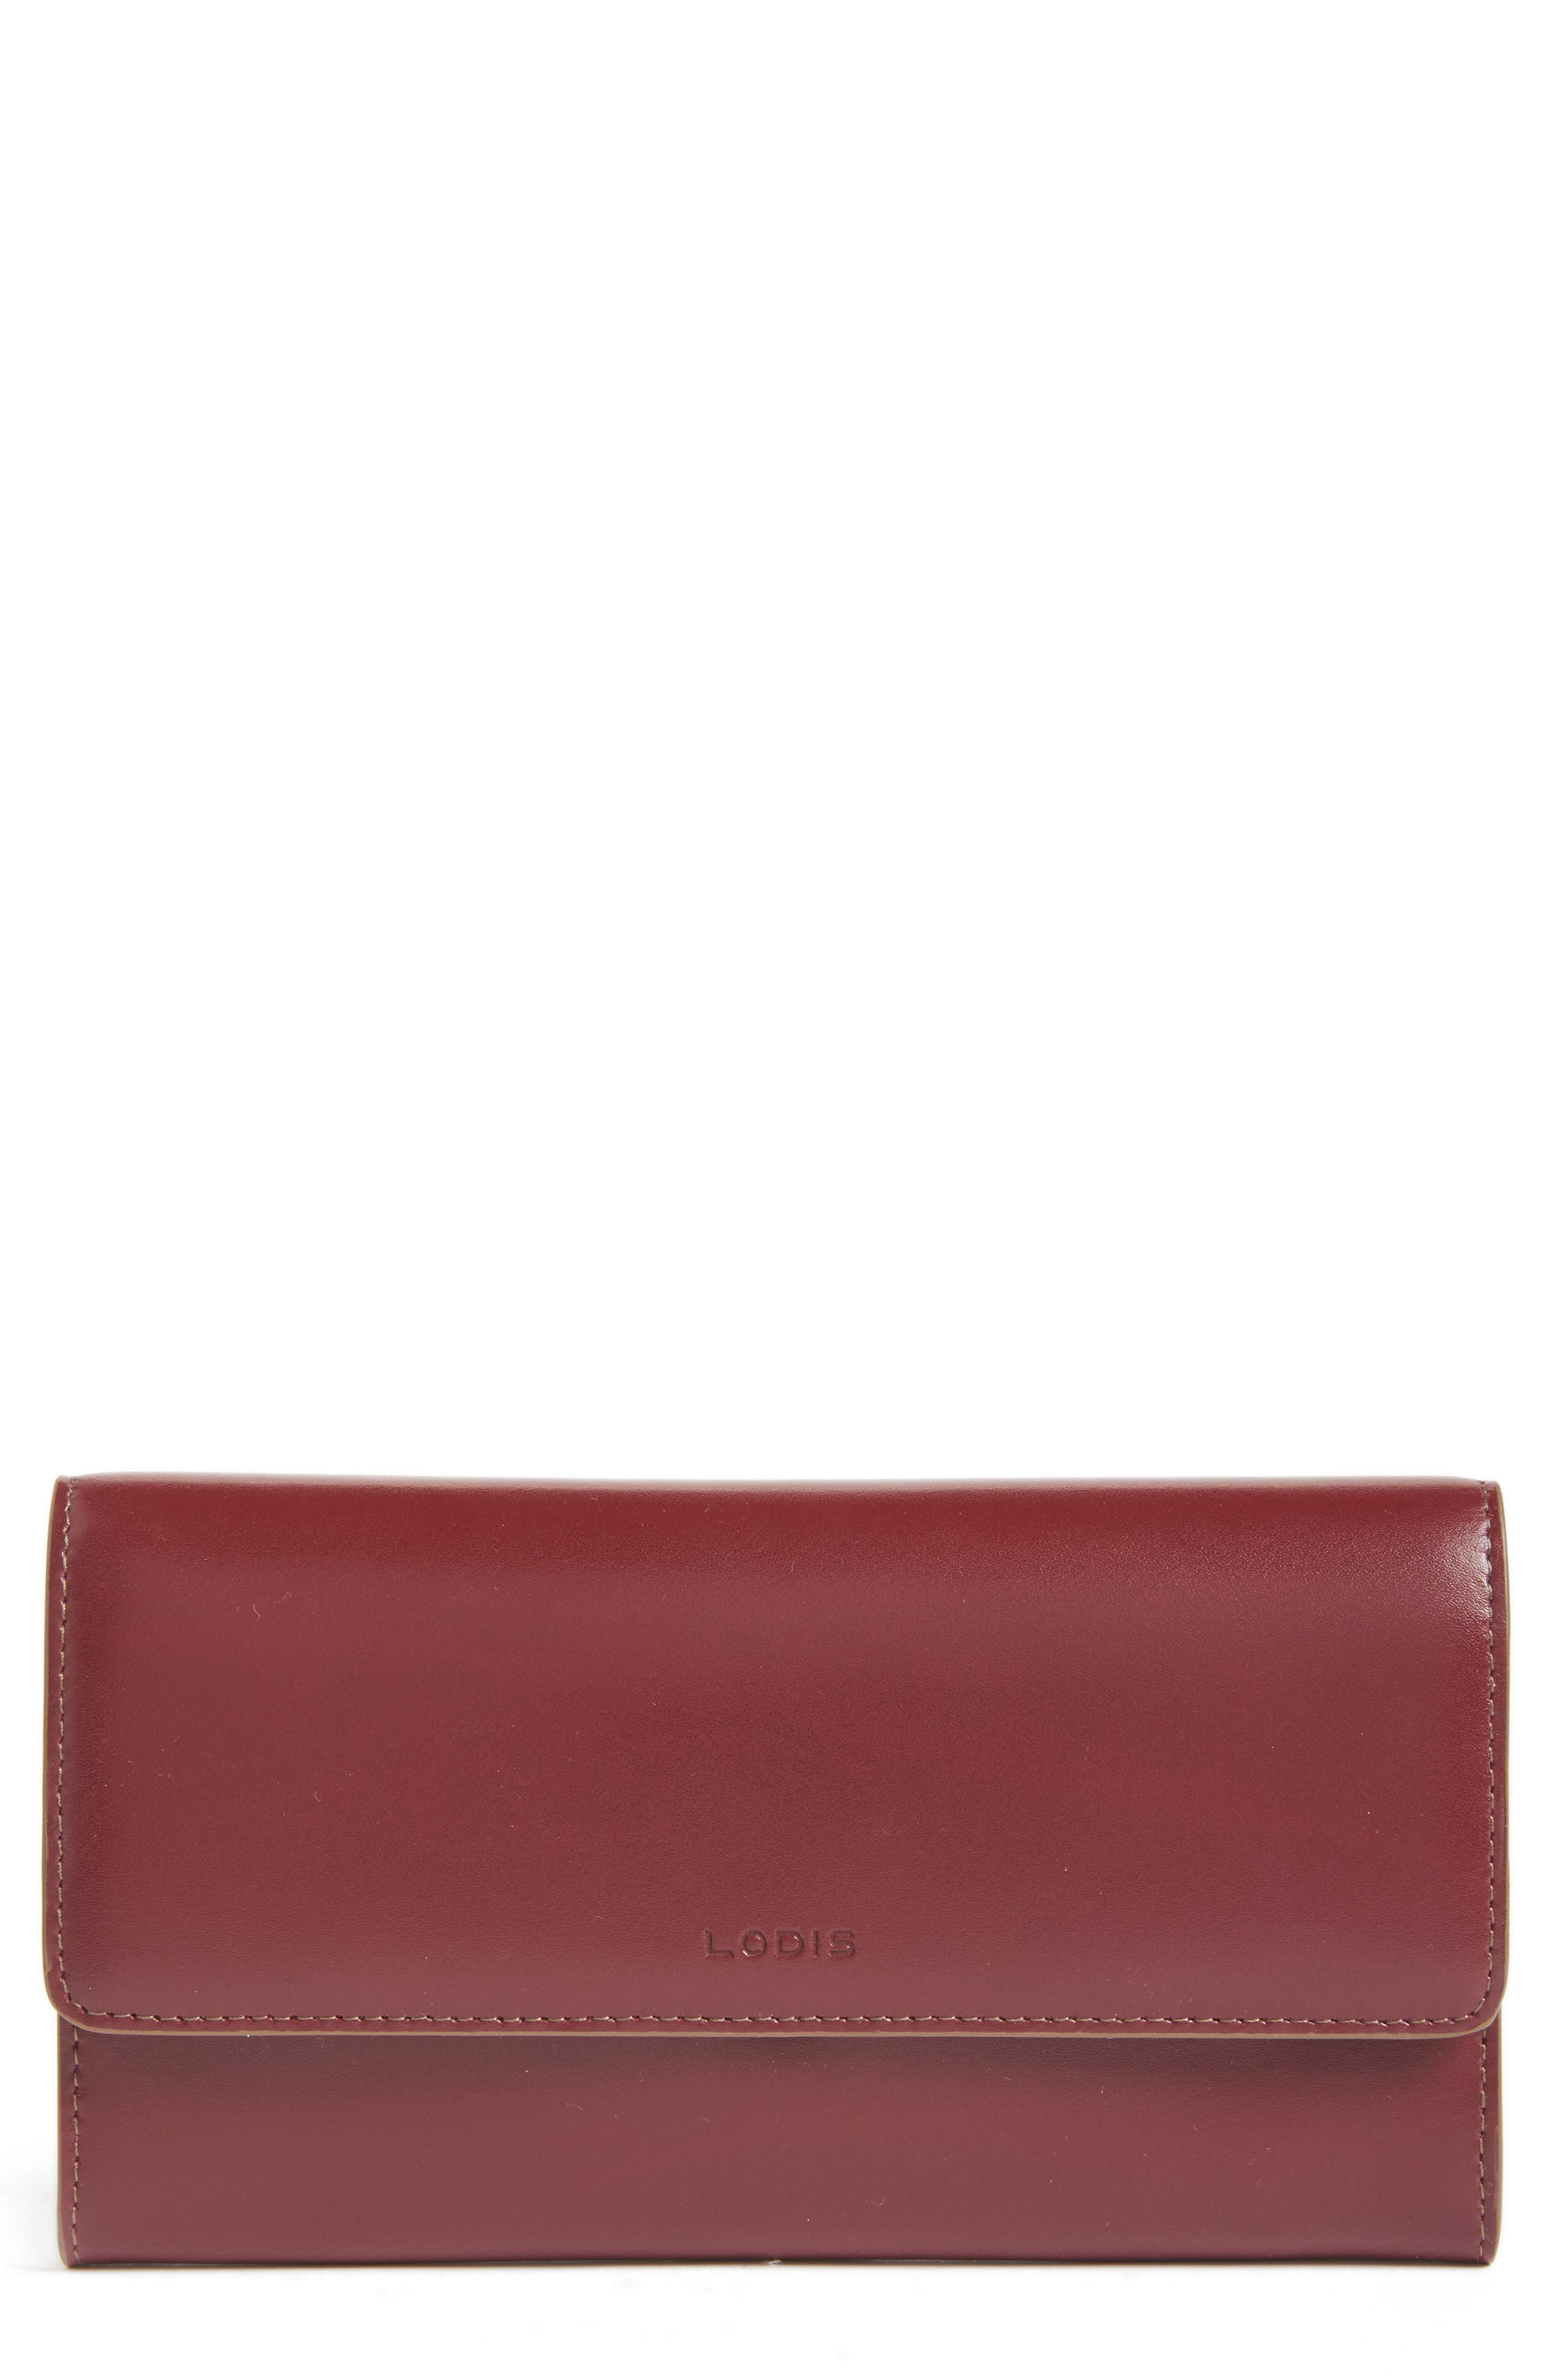 Main Image - Lodis Audrey - Cami RFID Leather Clutch Wallet